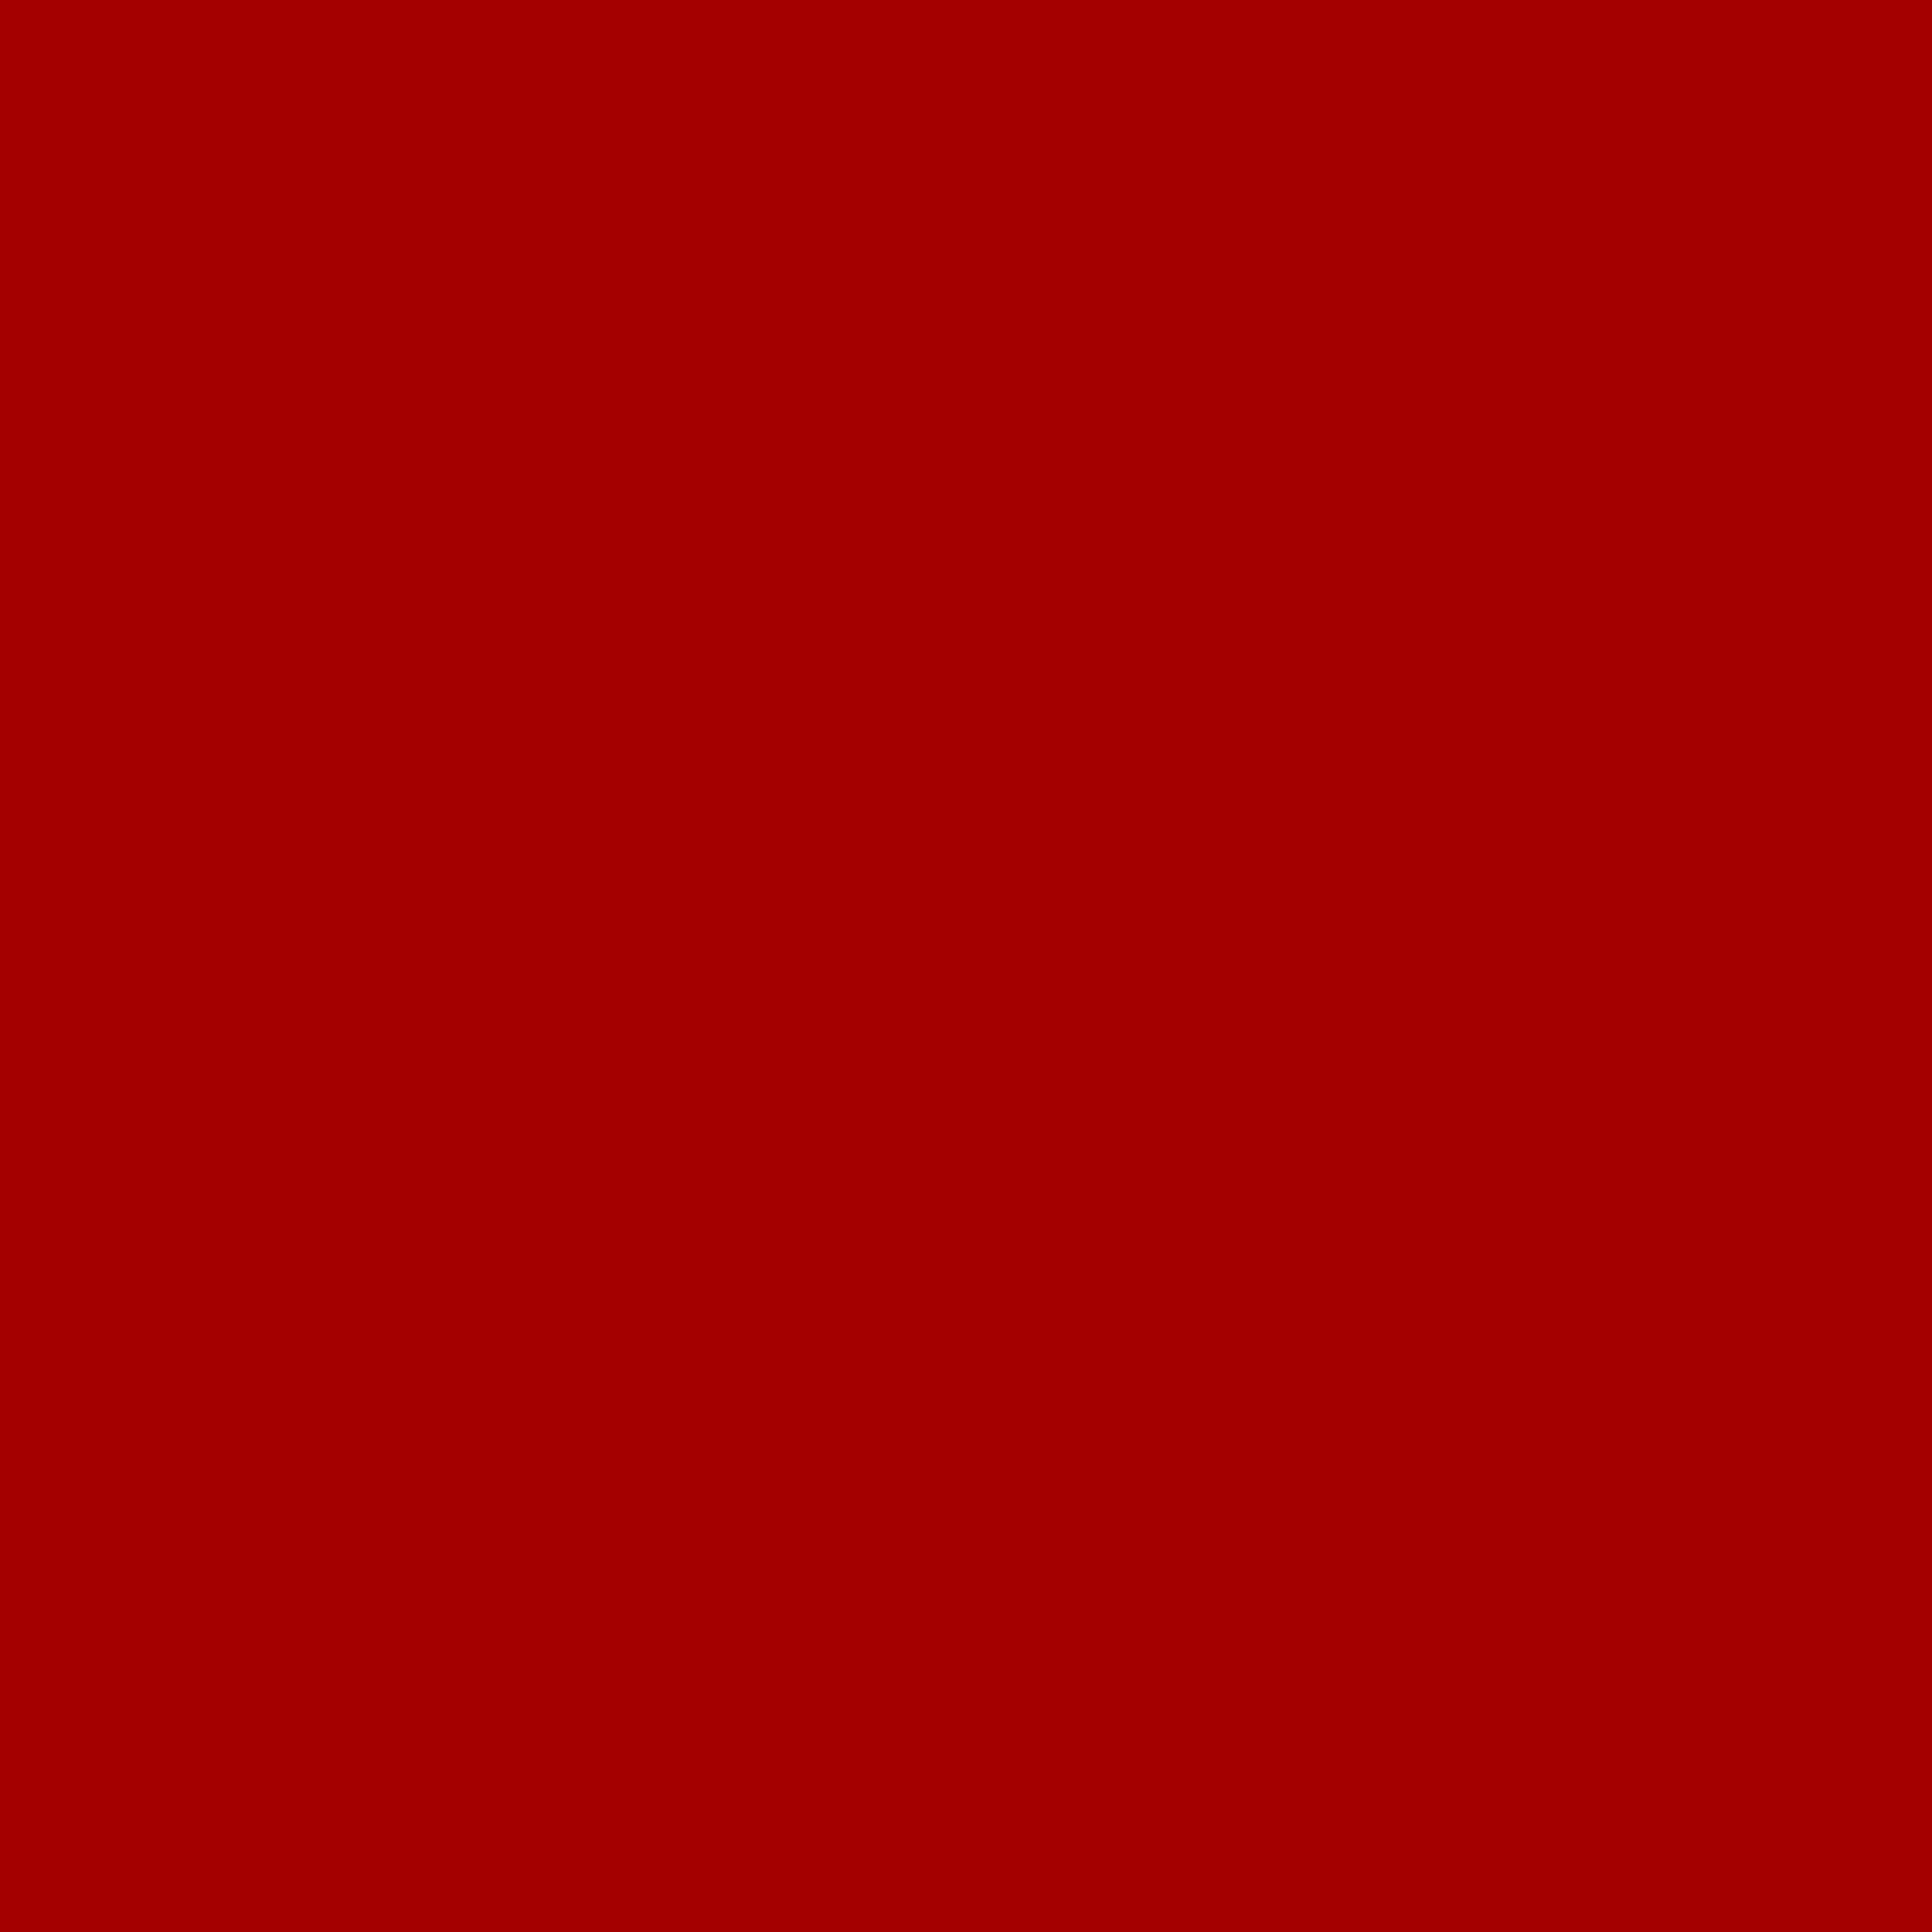 2732x2732 Dark Candy Apple Red Solid Color Background